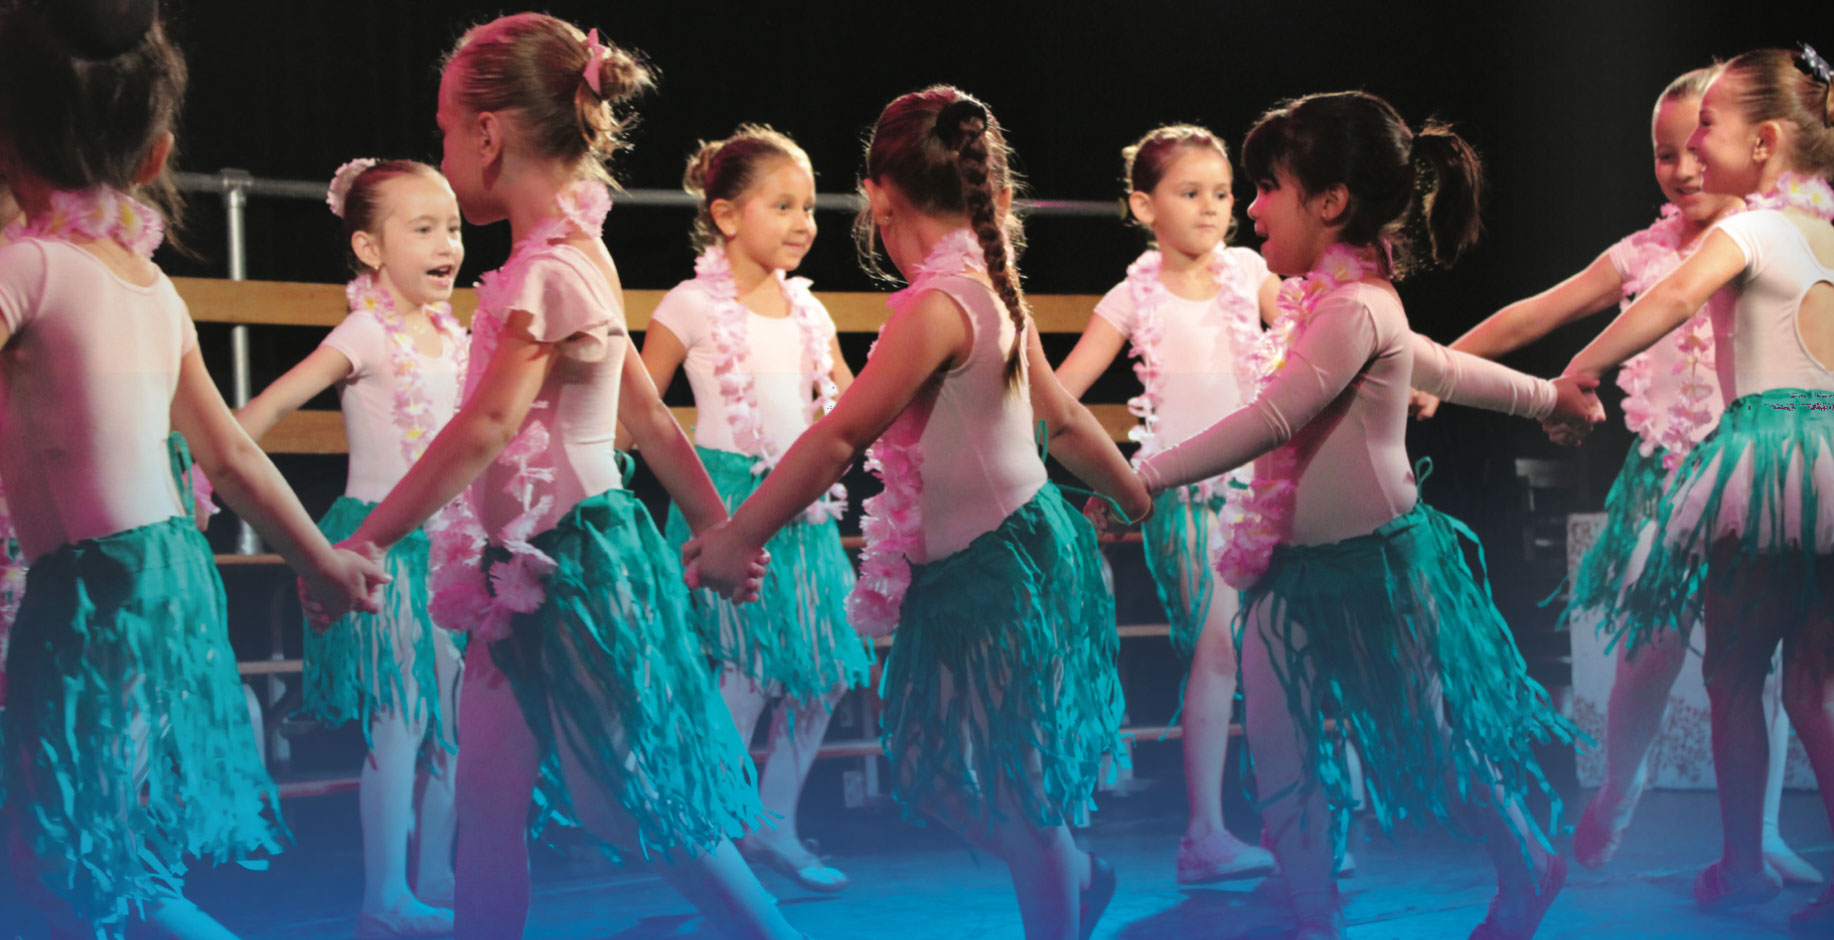 Primary and Lower school students performing a dance routine